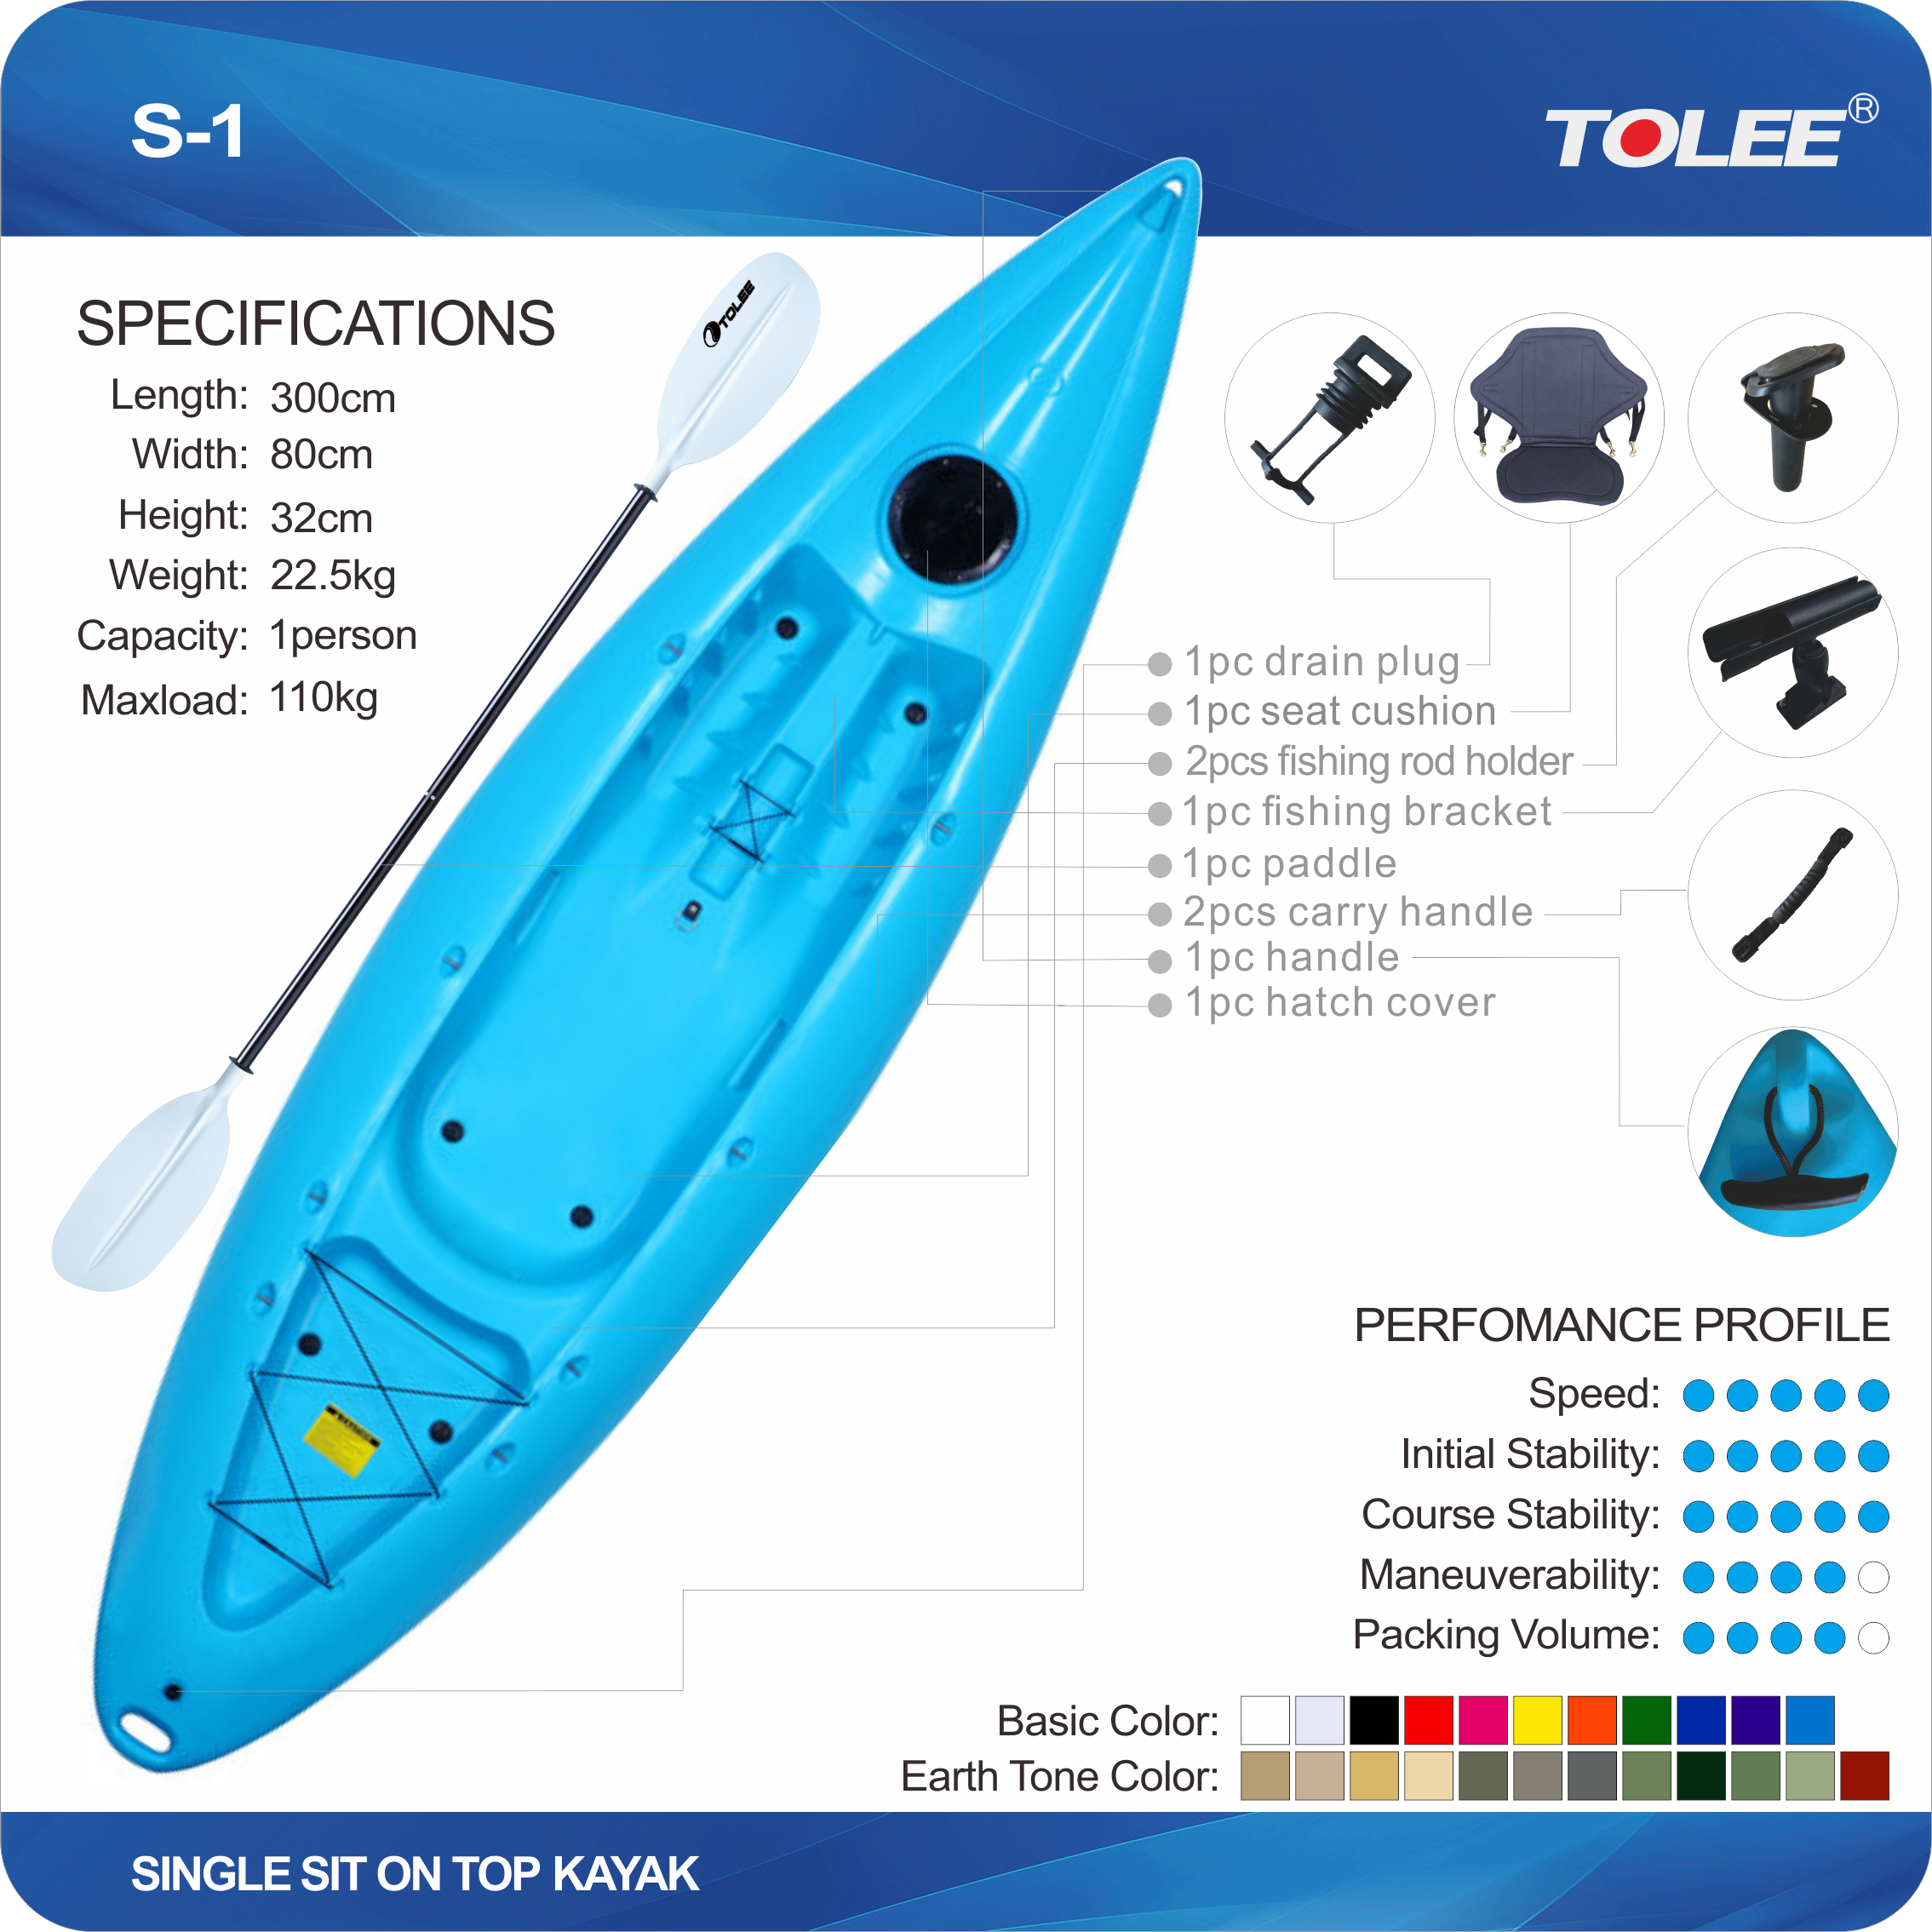 9.8Ft Single Tolee Factory Colorful Inflatable Rubber Kayak Glass Fish Bowl Rowing Boats